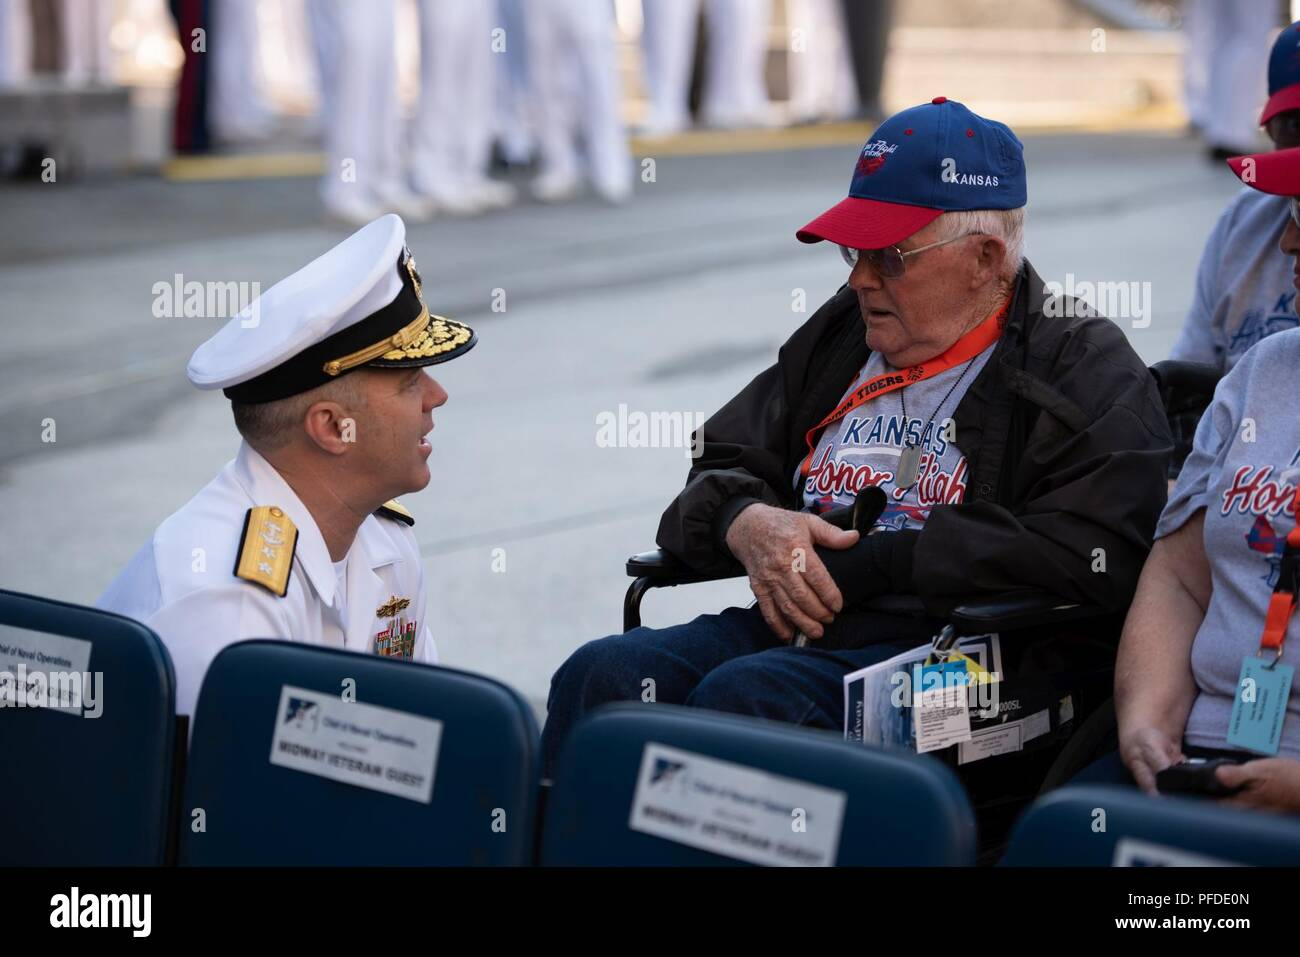 WASHINGTON (June 5, 2018) Rear Adm. Ronald Boxall meets with members of an Honor Flight from Kansas at the U.S. Navy Memorial in Washington, D.C., before the commemoration of the 76th anniversary of the Battle of Midway. The Battle of Midway began on June 4 in 1942 and stands as one of the U.S. Navy's most historically significant naval battles. Fought on the high seas of the Pacific more than half a century ago, this battle altered the course of the war in the Pacific and thereby shaped the outcome of world events. - Stock Image